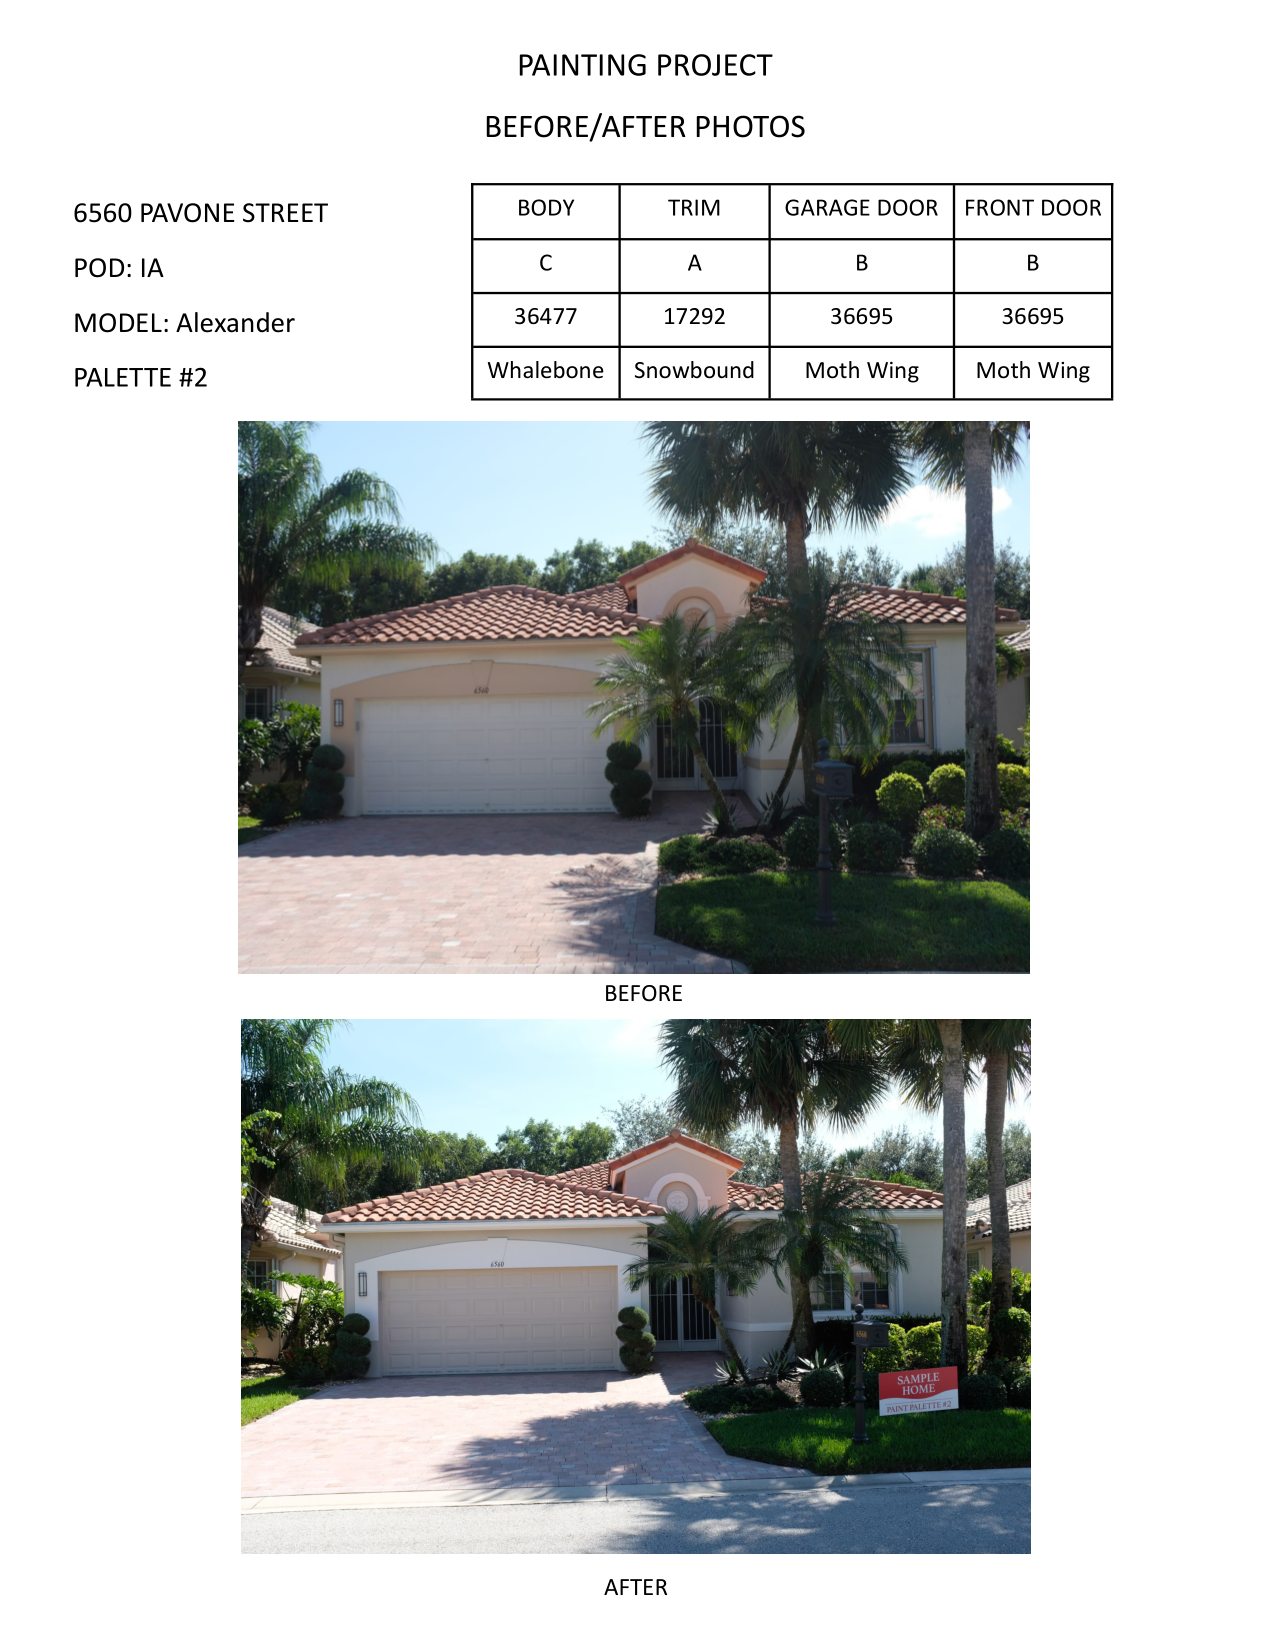 b4aftersample homes pictures-2.png